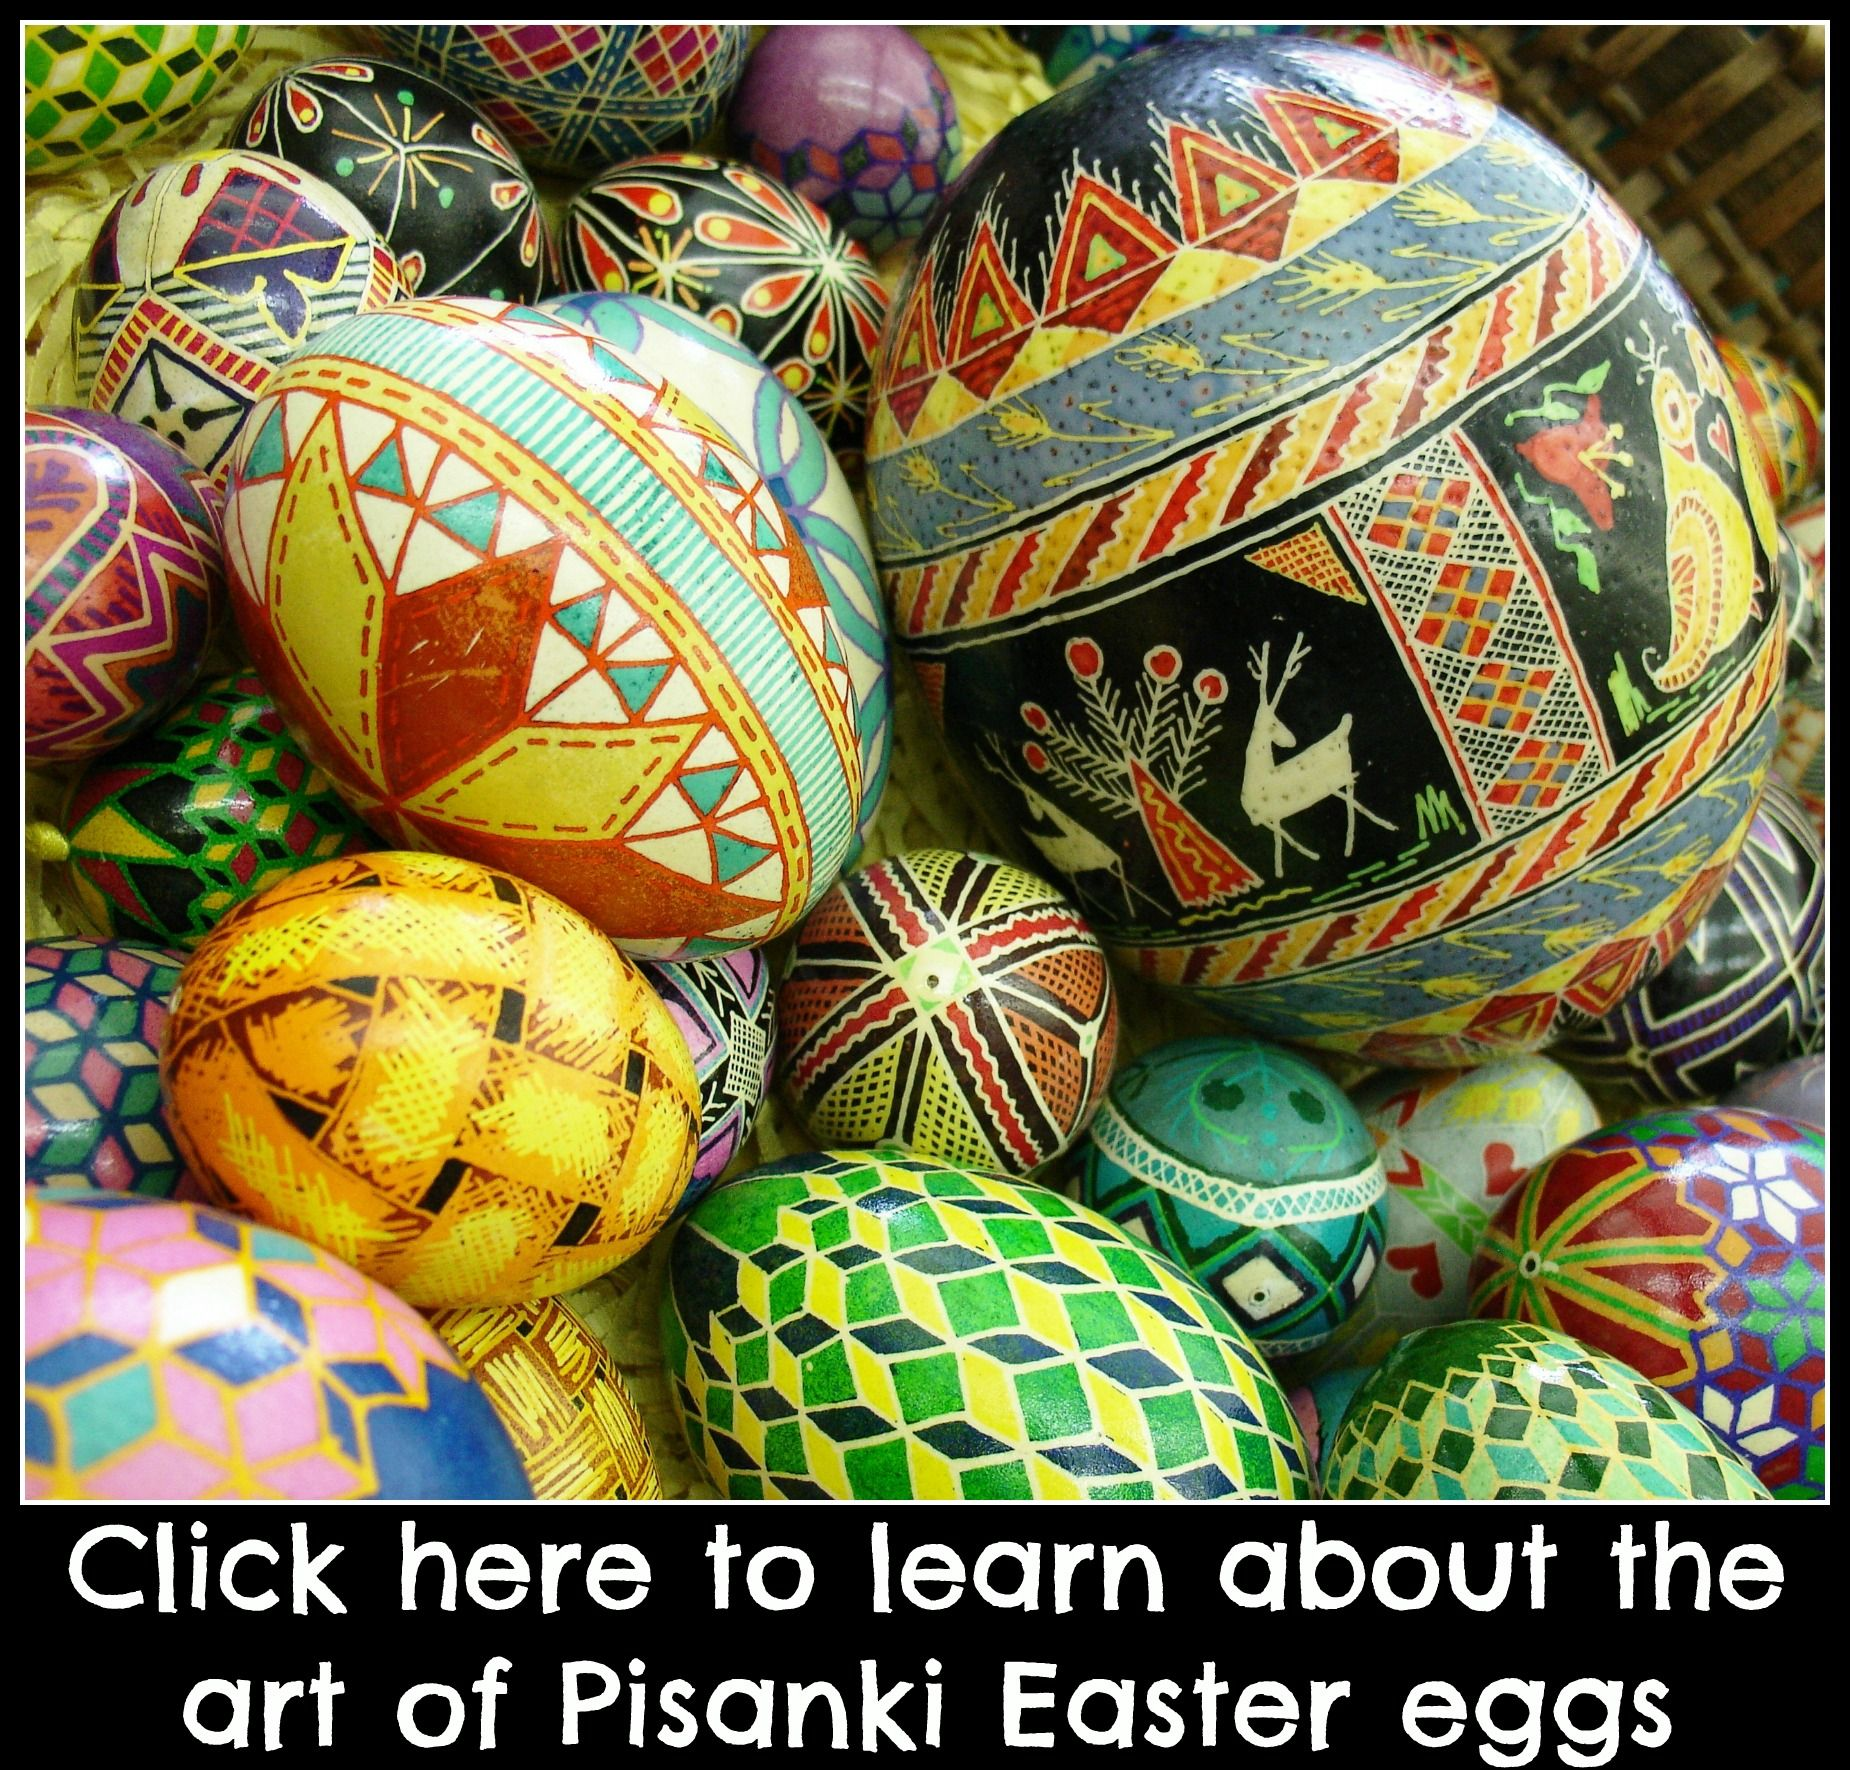 The Art of Pisanki Easter Eggs. Find out more here: LiveBetterByDesign.wordpress.com